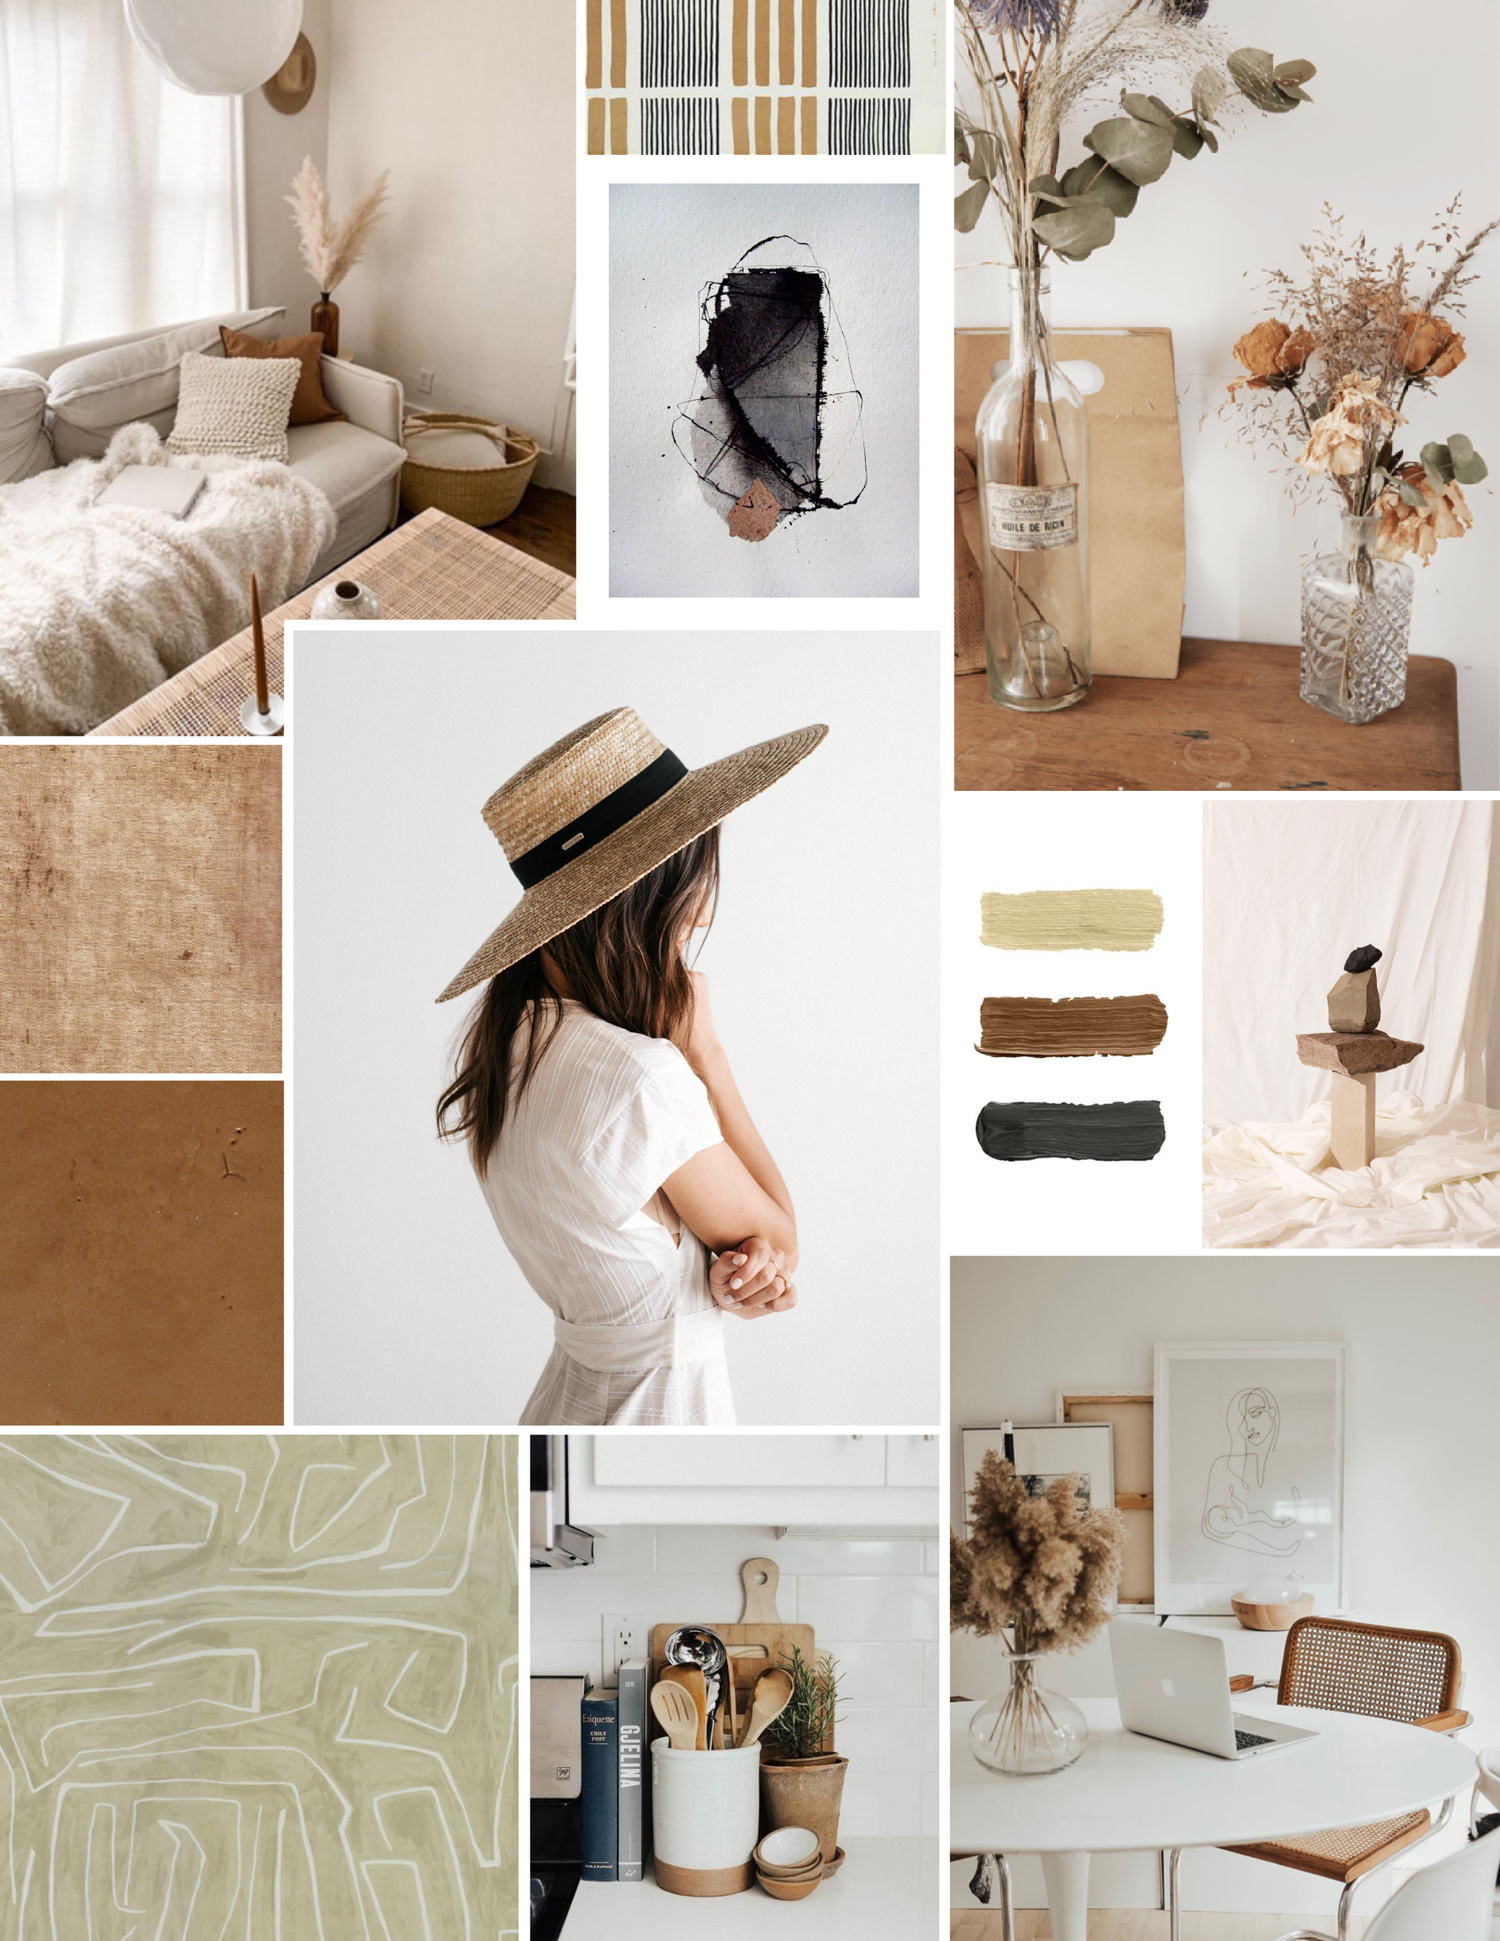 How To Make Sustainable Interior Design And Decorating Decisions